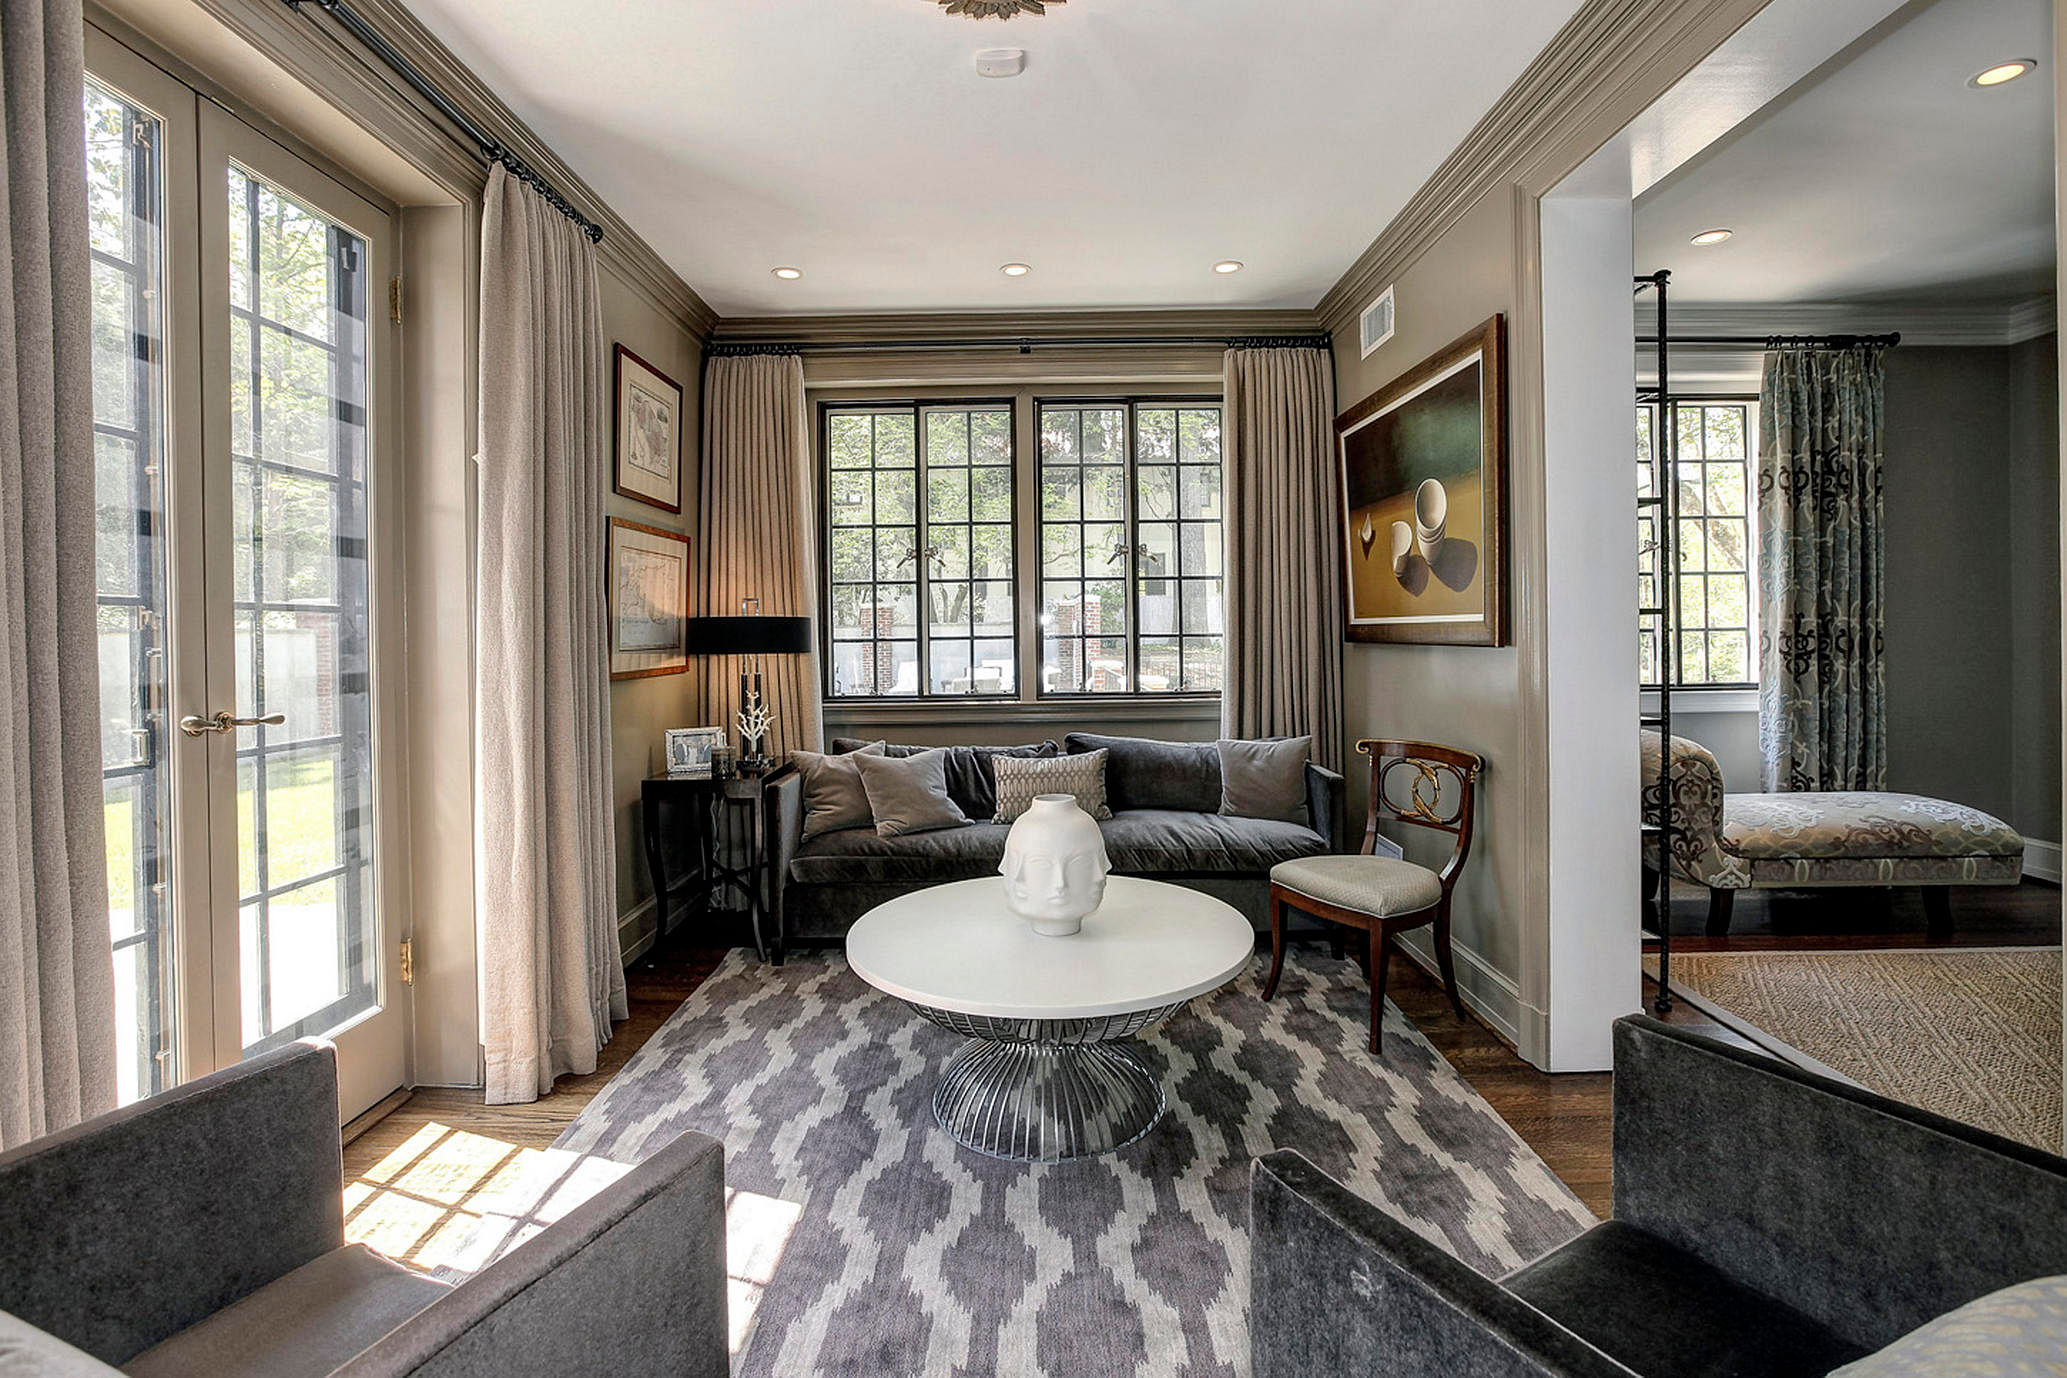 White house bathroom - Take A Peek Inside The Obamas New Home After They Leave The White